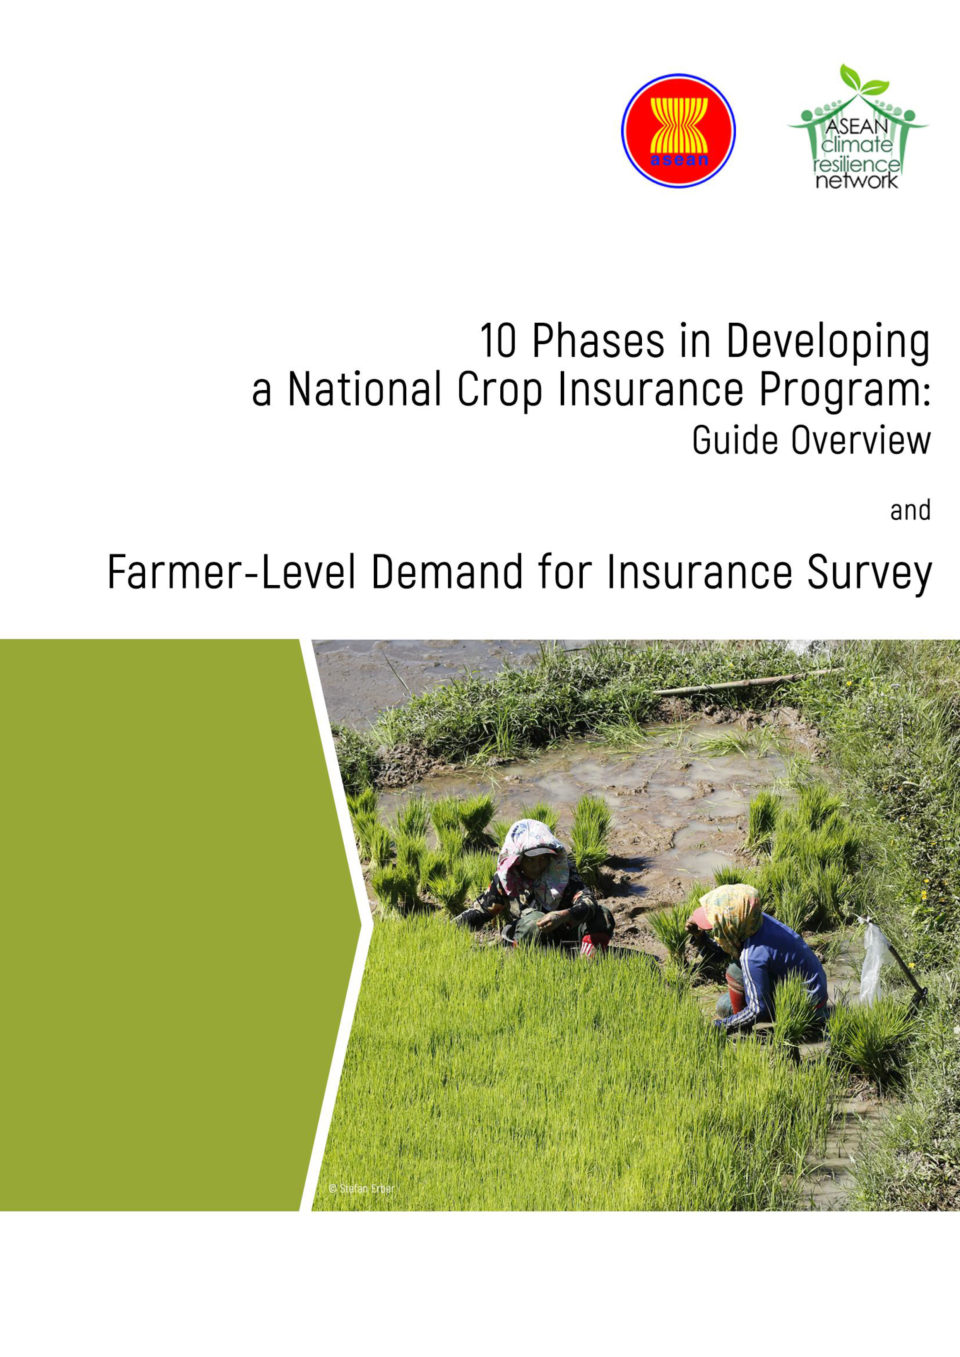 10 Phases in Developing a National Crop Insurance Program: Guide Overview